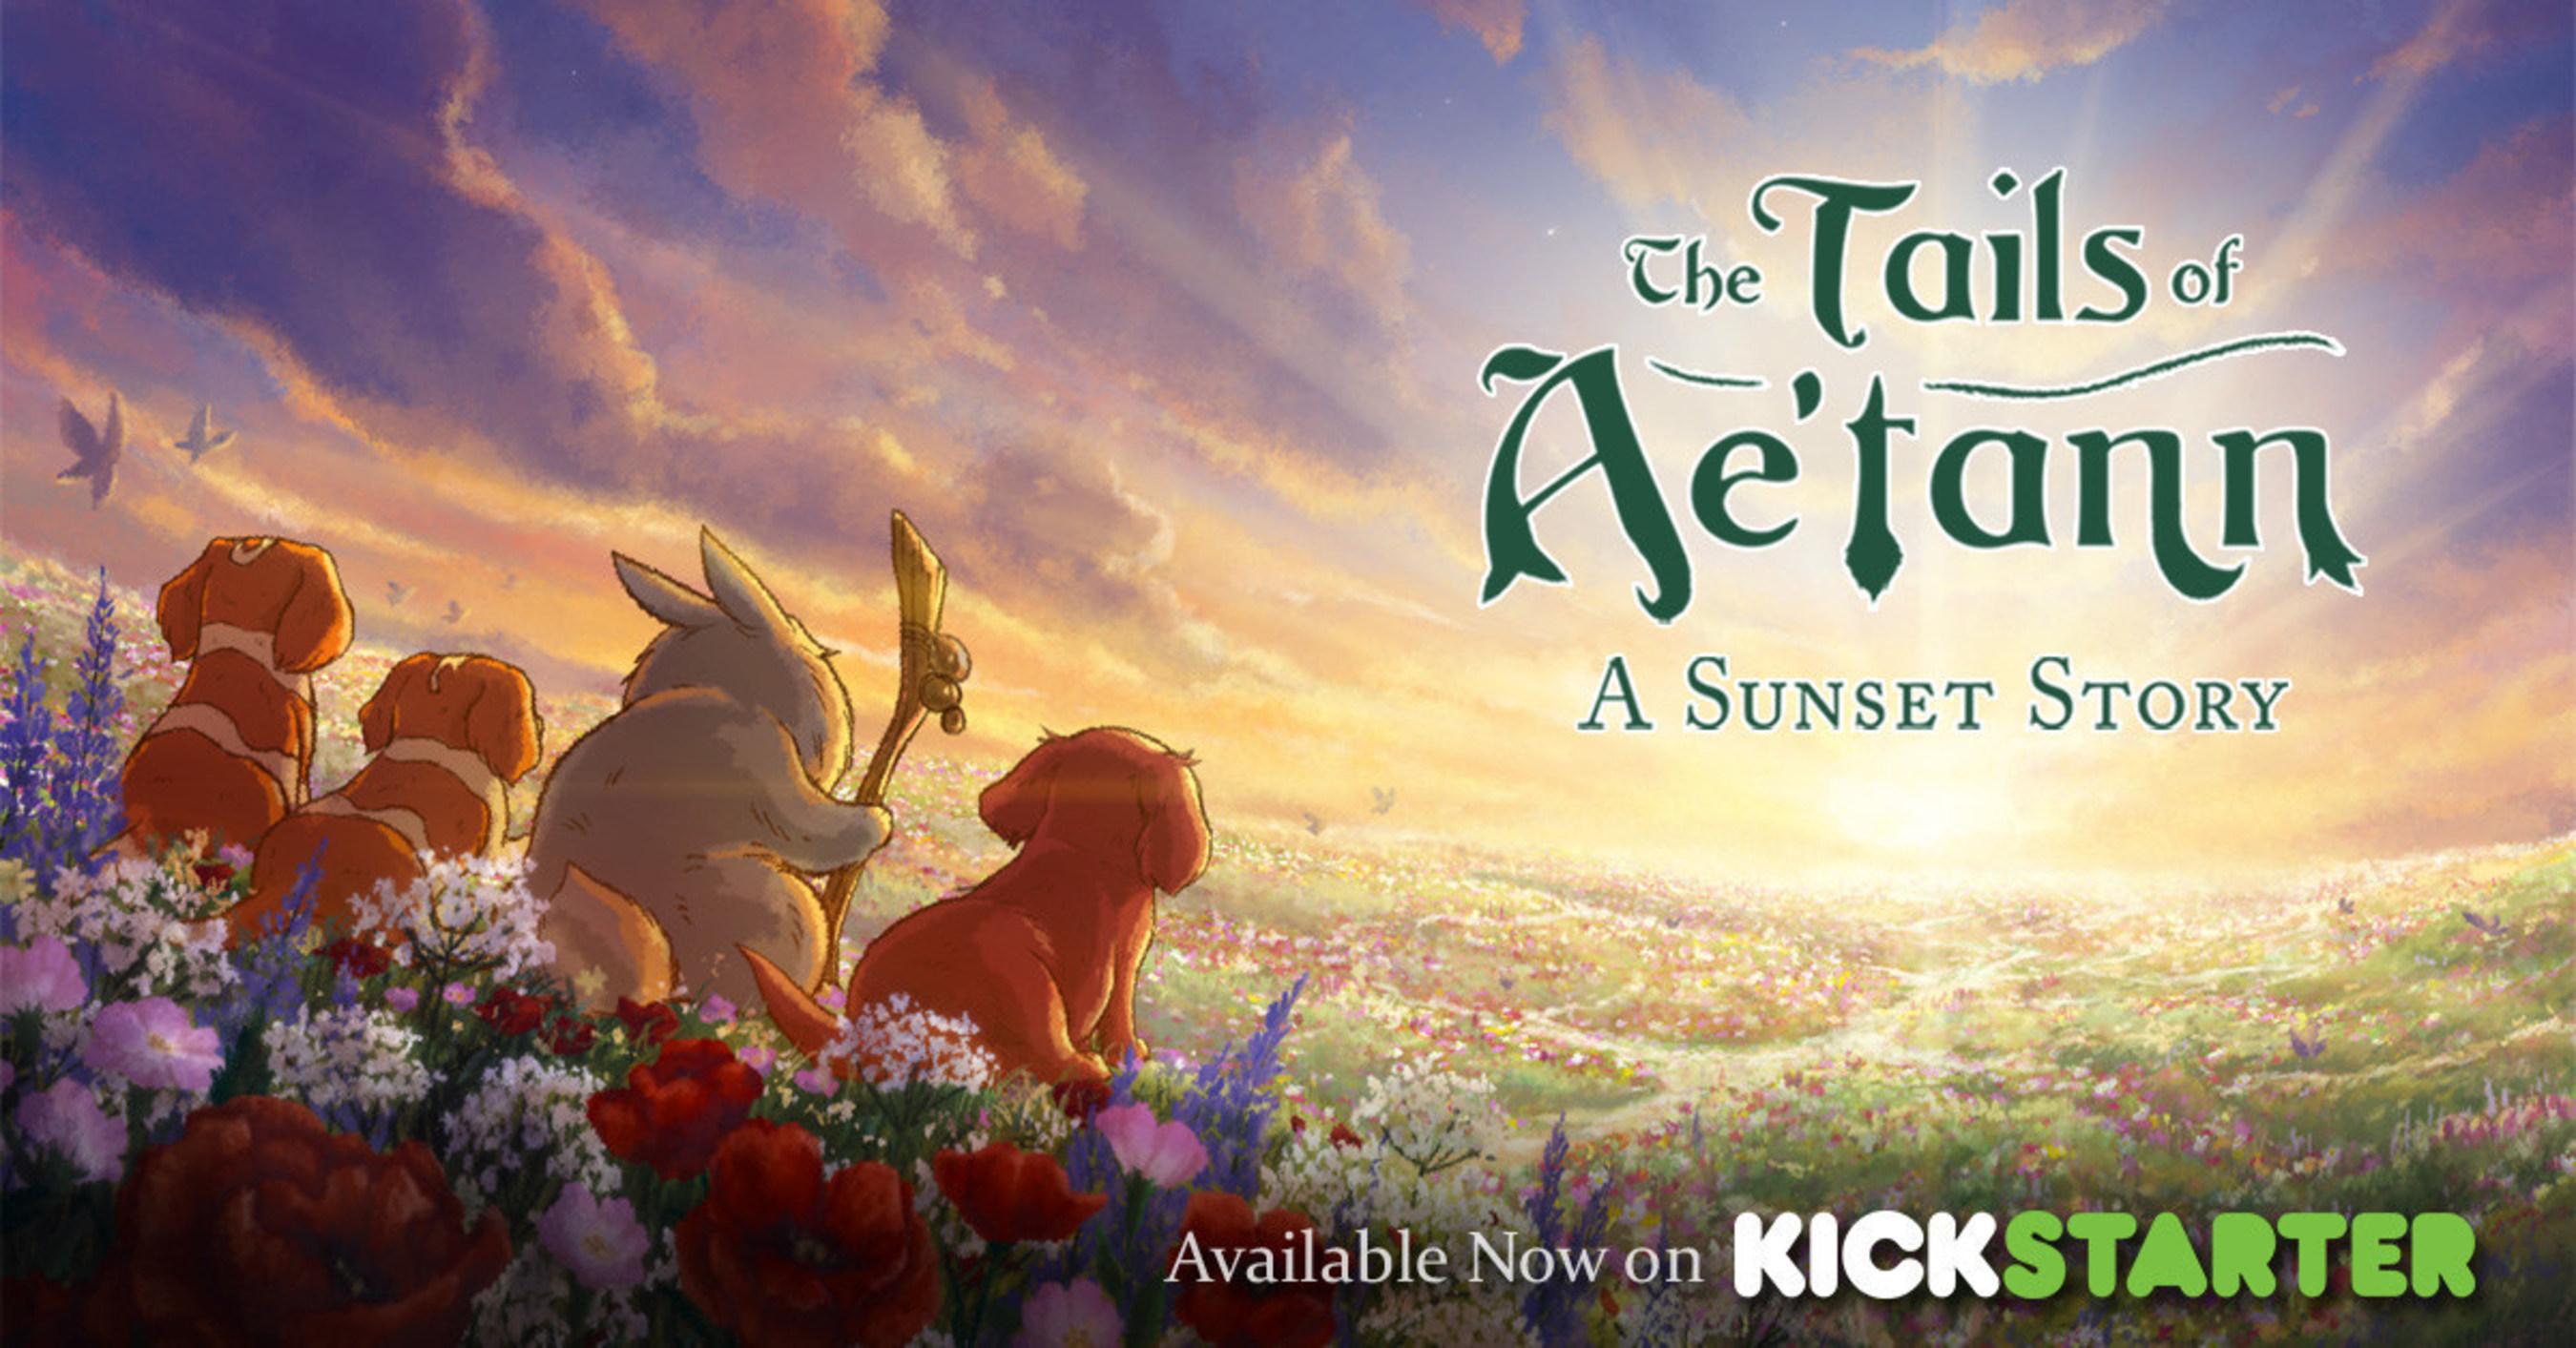 'The Tails of Ae'tann' From Five-a Two LLC Hits #1 in Most Funded Live Children's Book Projects and Top 10 in Most Funded Live Publishing Projects at Midway Point on